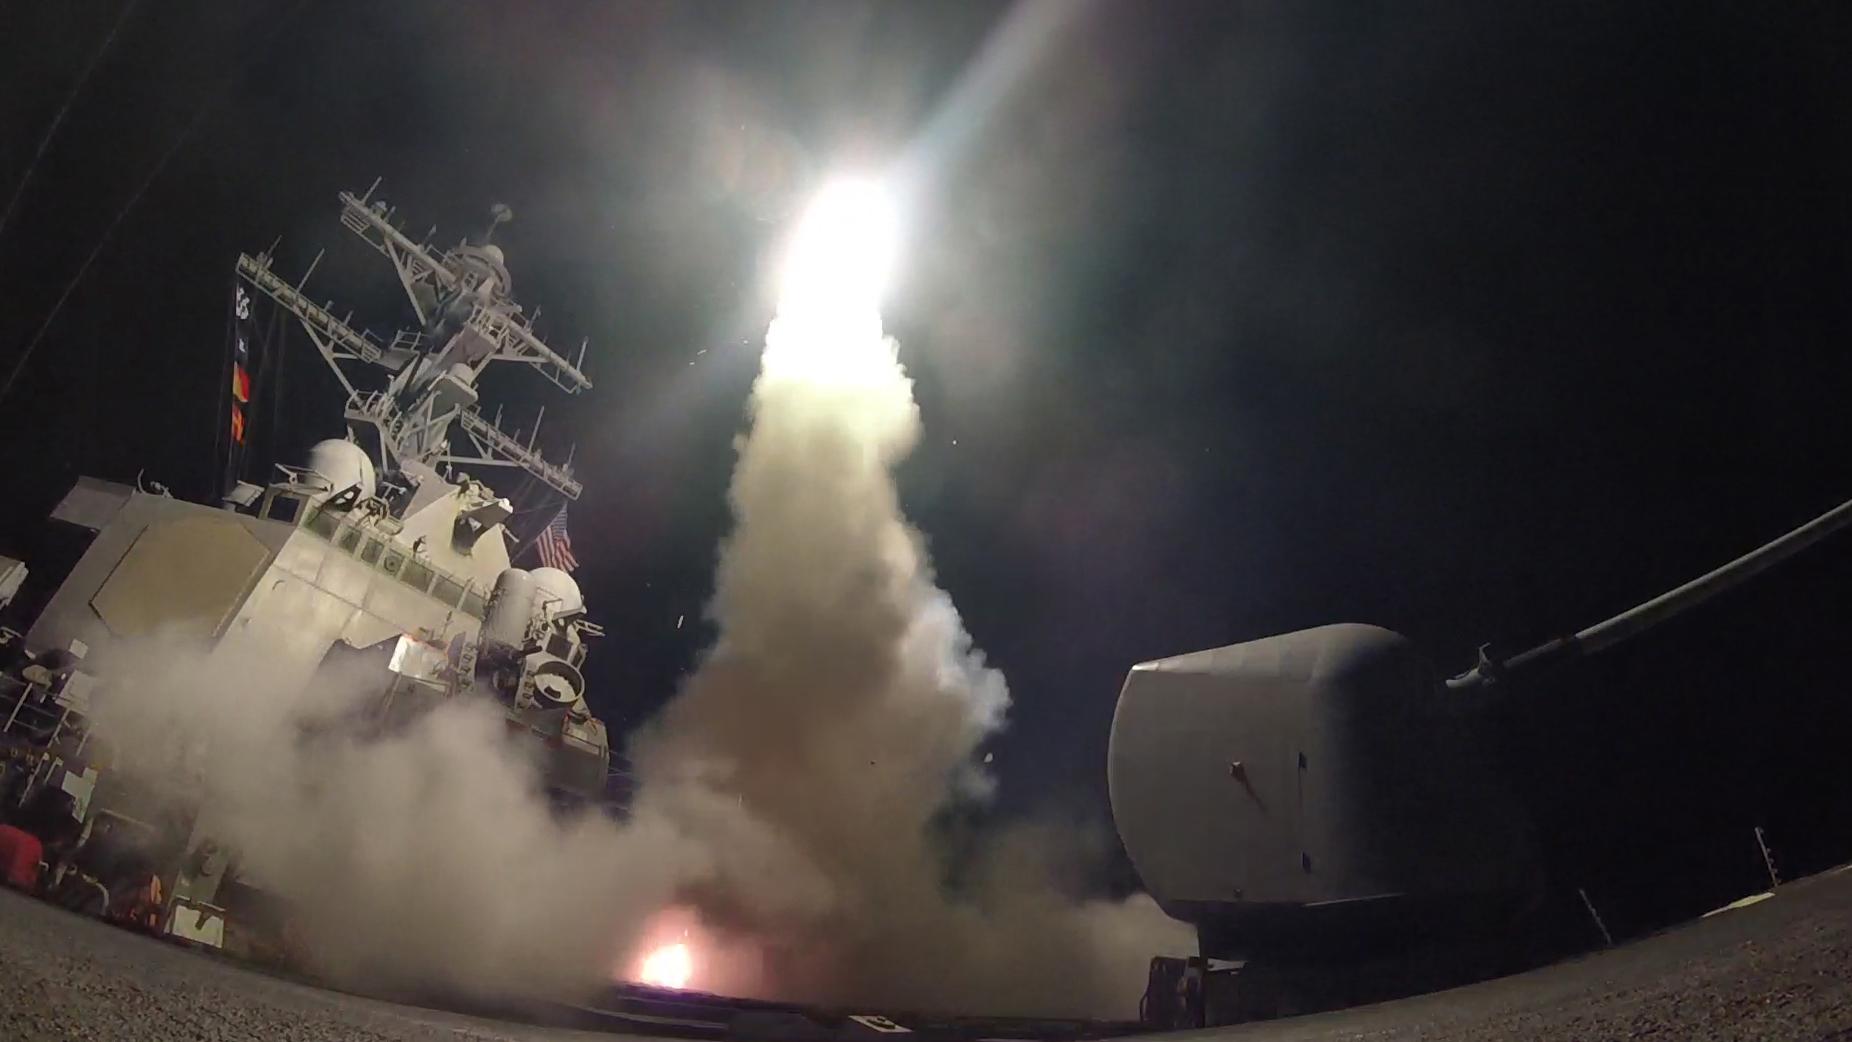 In this handout provided by the U.S. Navy, the guided-missile destroyer USS Porter fires a Tomahawk land attack missile on April 7, 2017 in the Mediterranean Sea. The USS Porter was one of two destroyers that fired a total of 59 cruise missiles at a Syrian military airfield in retaliation for a chemical attack that killed scores of civilians this week. The attack was the first direct U.S. assault on Syria and the government of President Bashar al-Assad in the six-year war there.